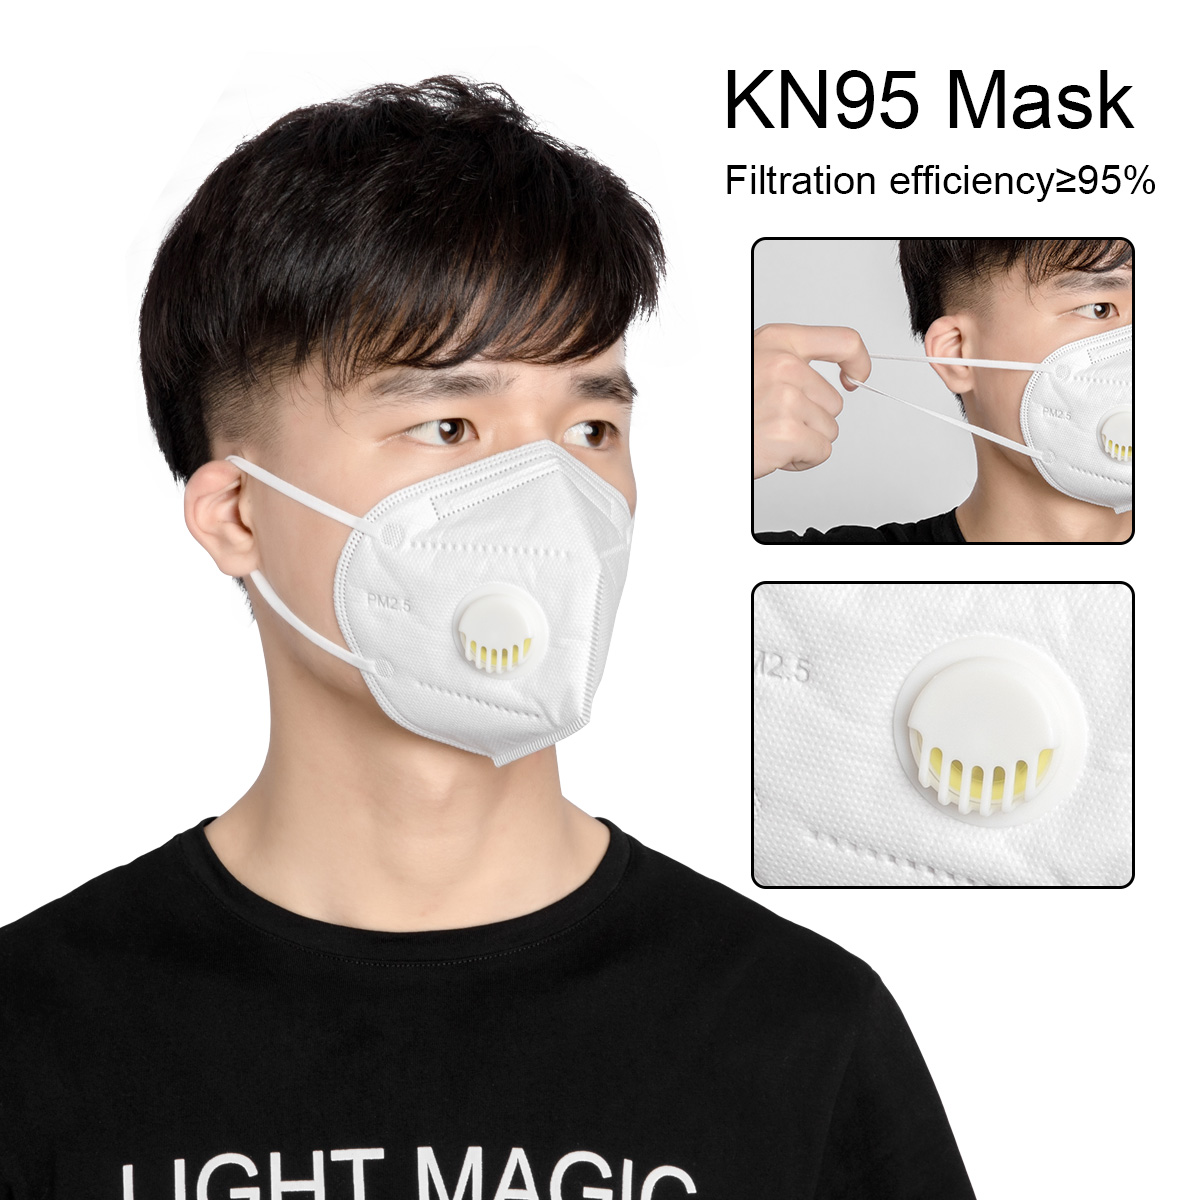 100pcs Mask KN95 PM2.5 Anti  Formaldehyde Bad Smell Bacteria Respirator Valve Dust-proof Mouth Masks  Prevention